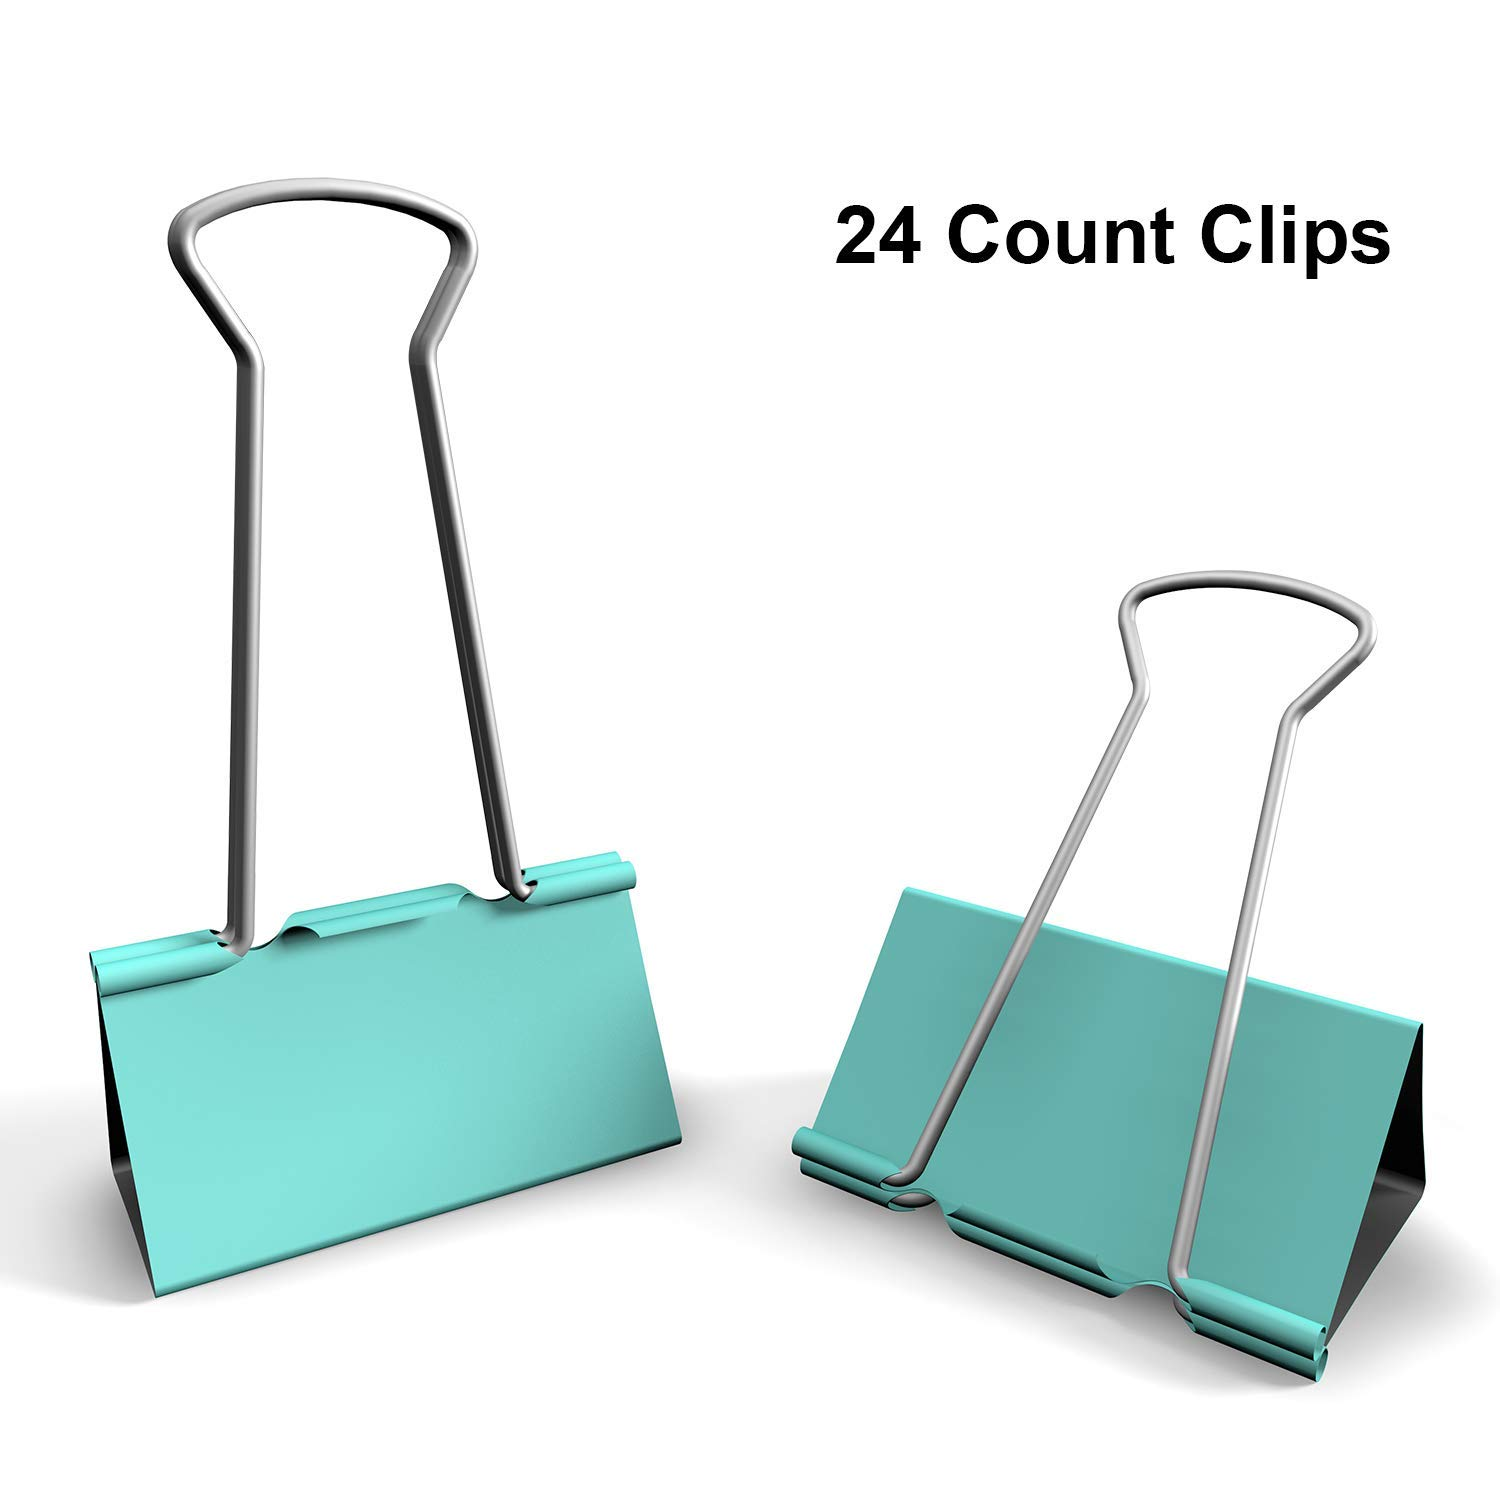 Nctinystore Light Green Binder Clips Medium of 1-1/4 inch (32mm) Colored Paper Clamp Assorted Size Assortment (Office or School Metal Fold Back Clip Metal Clips)(1.25 in/32 mm)(LightGreen, 24 - Count)